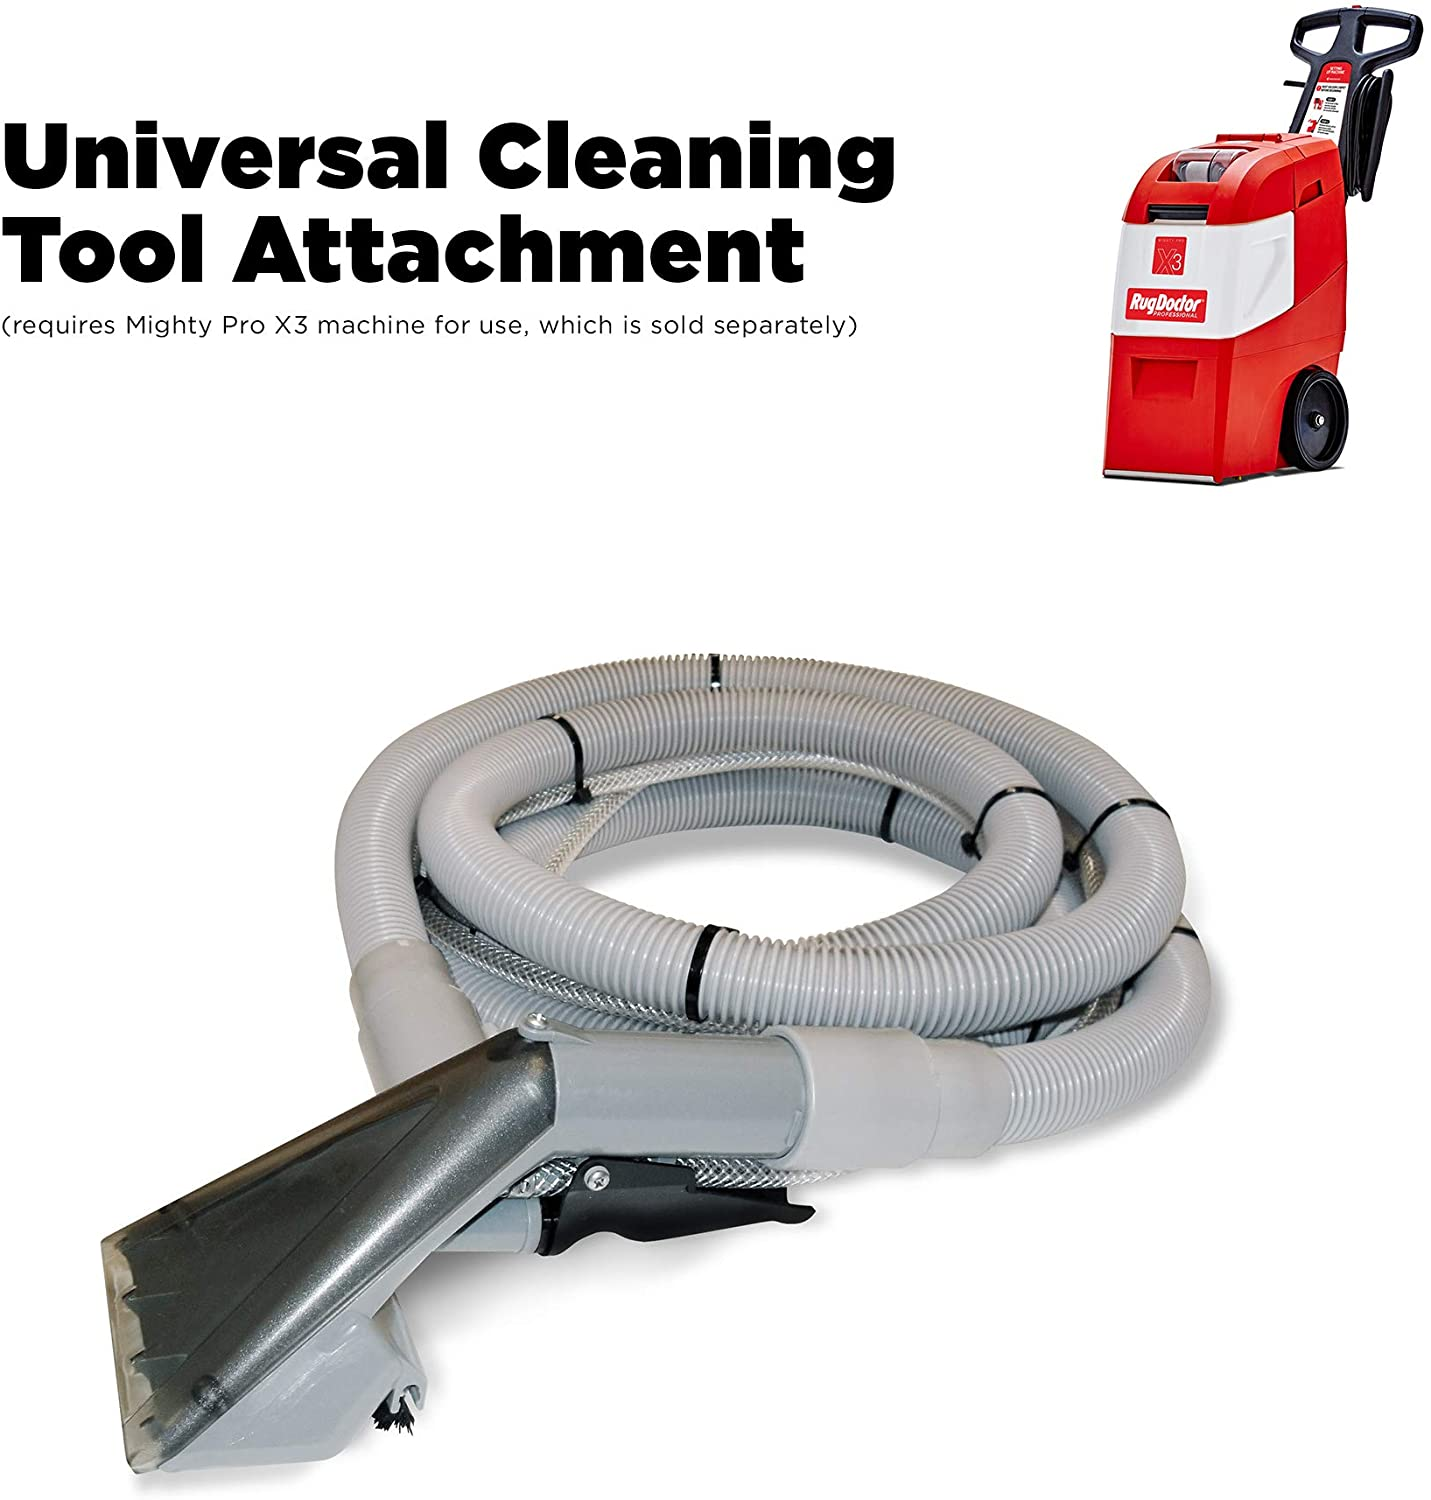 Rug Doctor Universal Hand Tool with 12-ft Hose; for Use with Mighty Pro, Mighty Pro X3, and Wide Track Machines; Deep Cleans Dirt from Hard to Reach Places in The Home, Office and Car